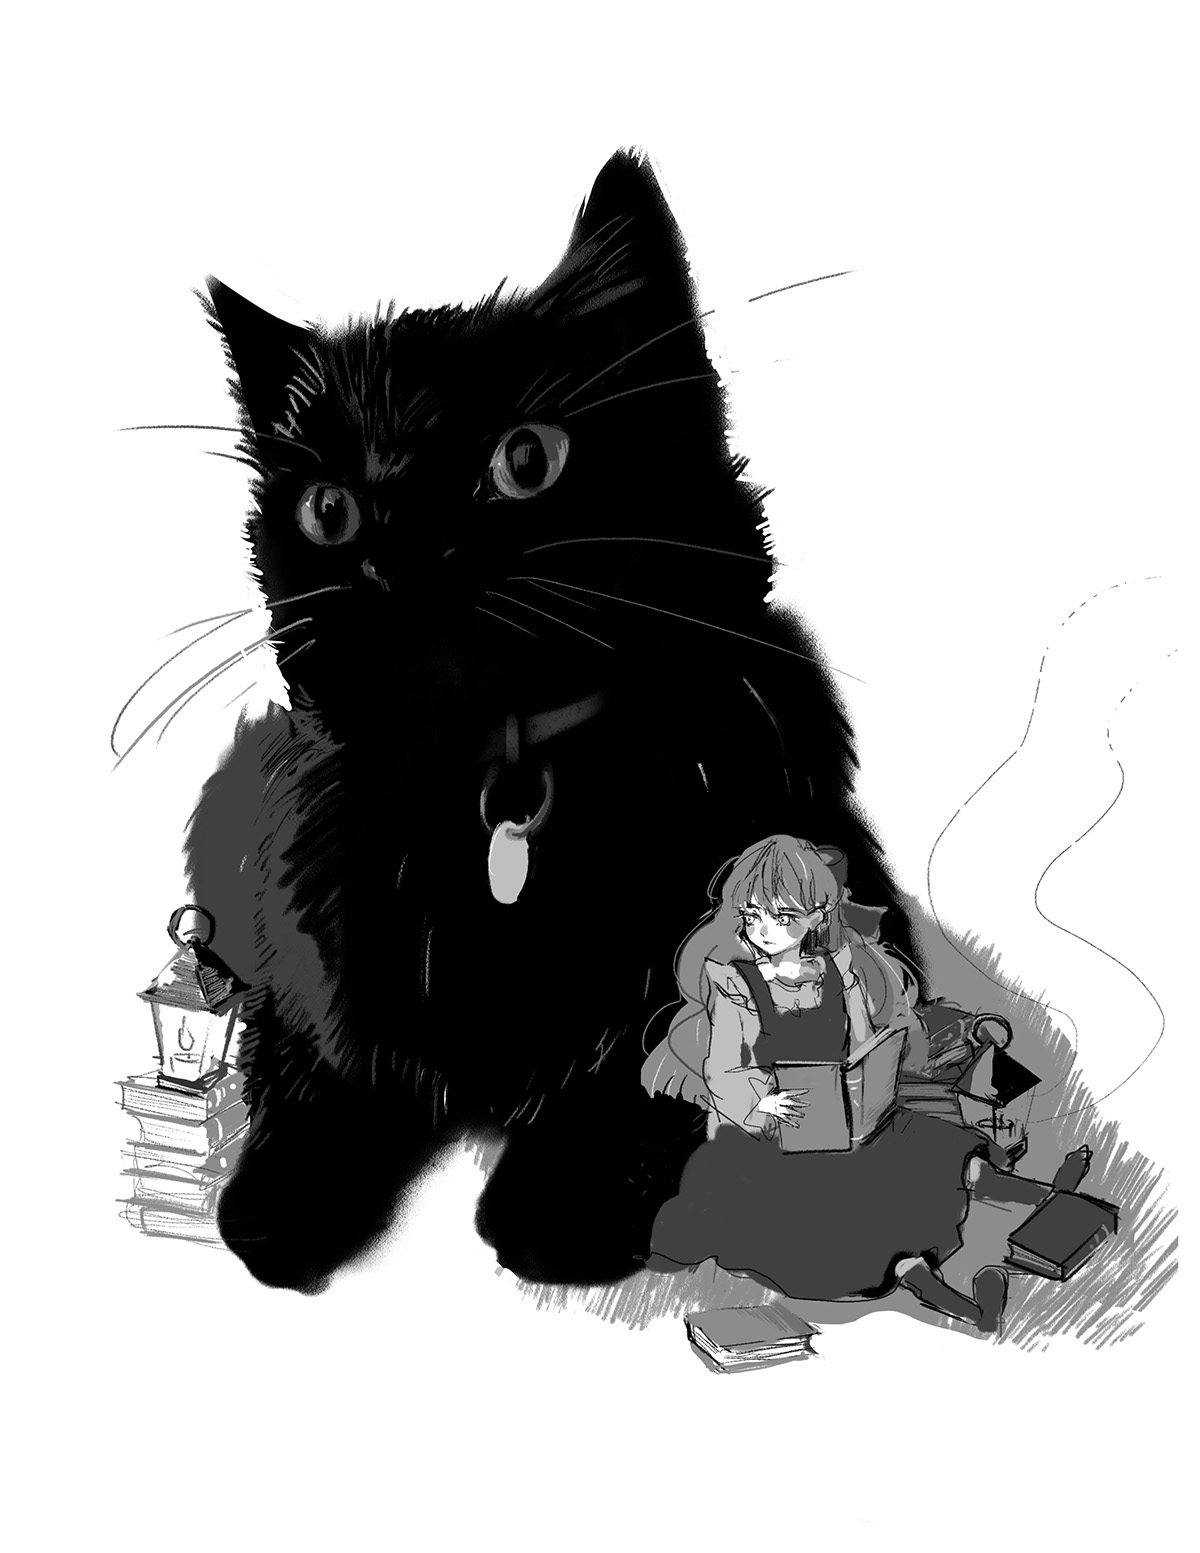 A black-and-white illustration of a cat and girl reading a book.